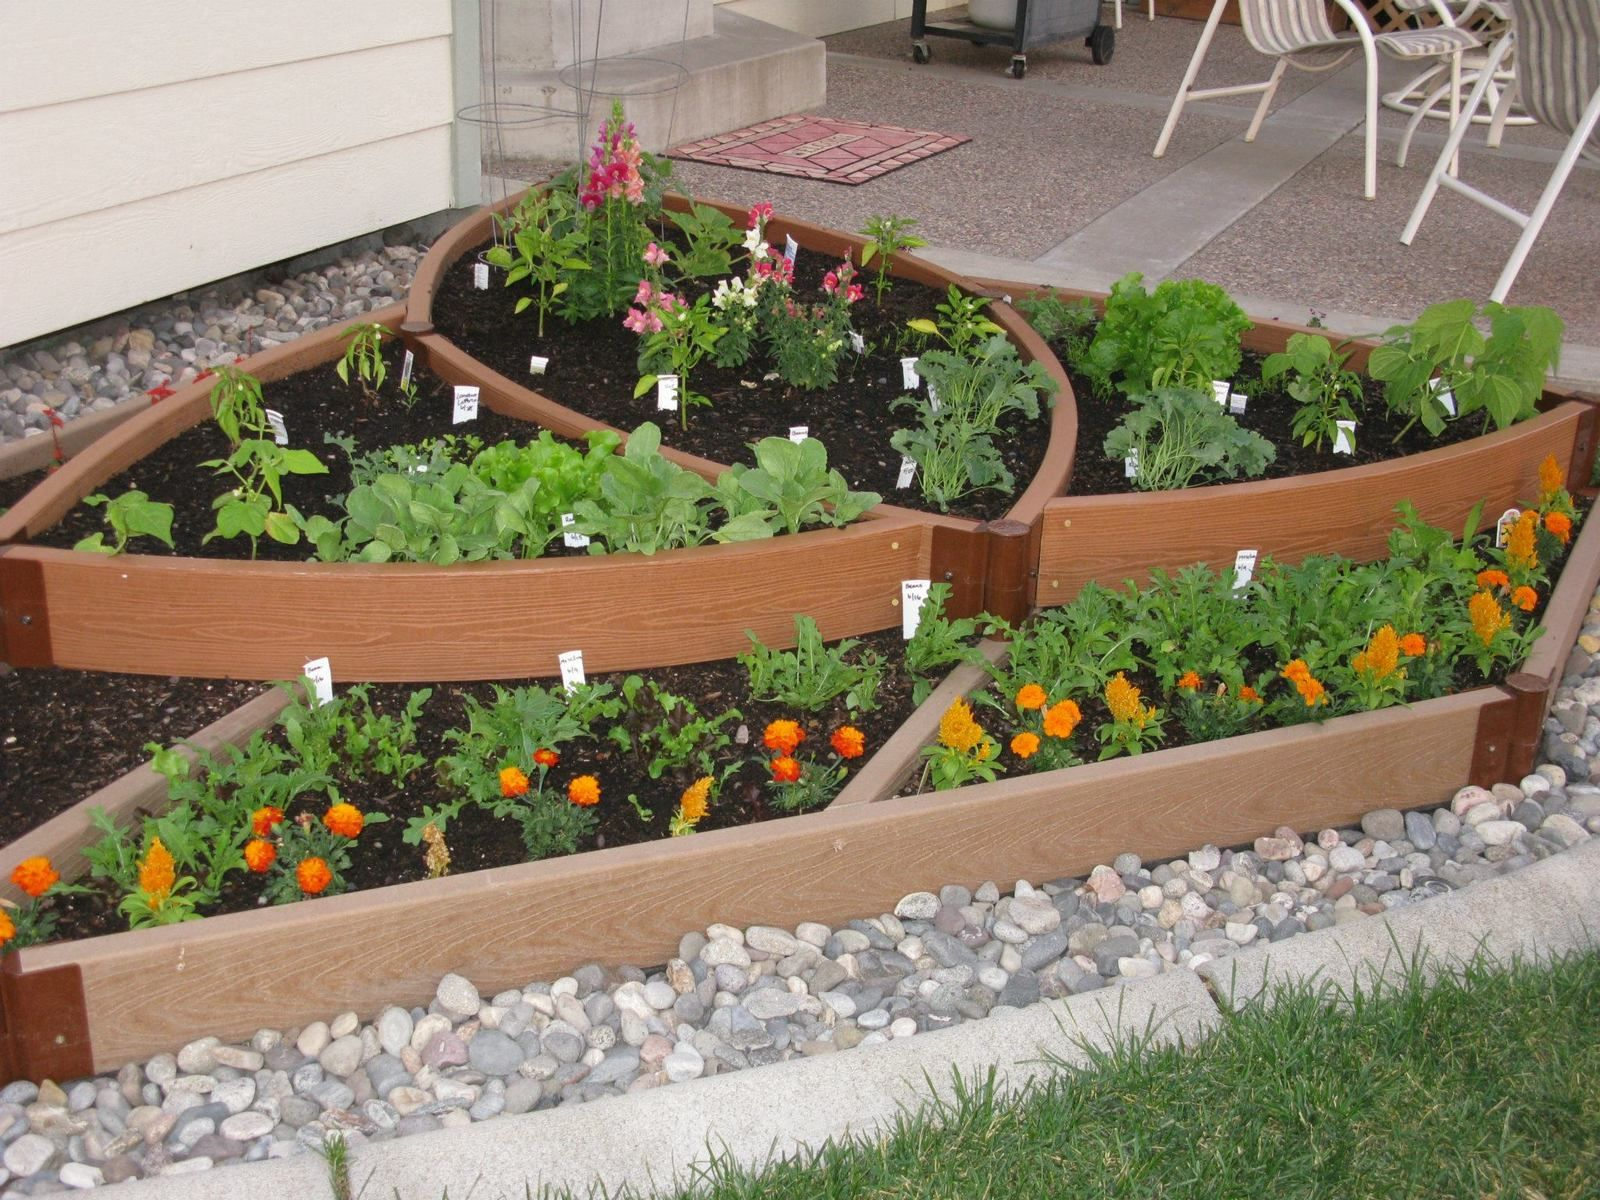 Raised garden raised garden bed kits for sale and buy for Raised veggie garden designs